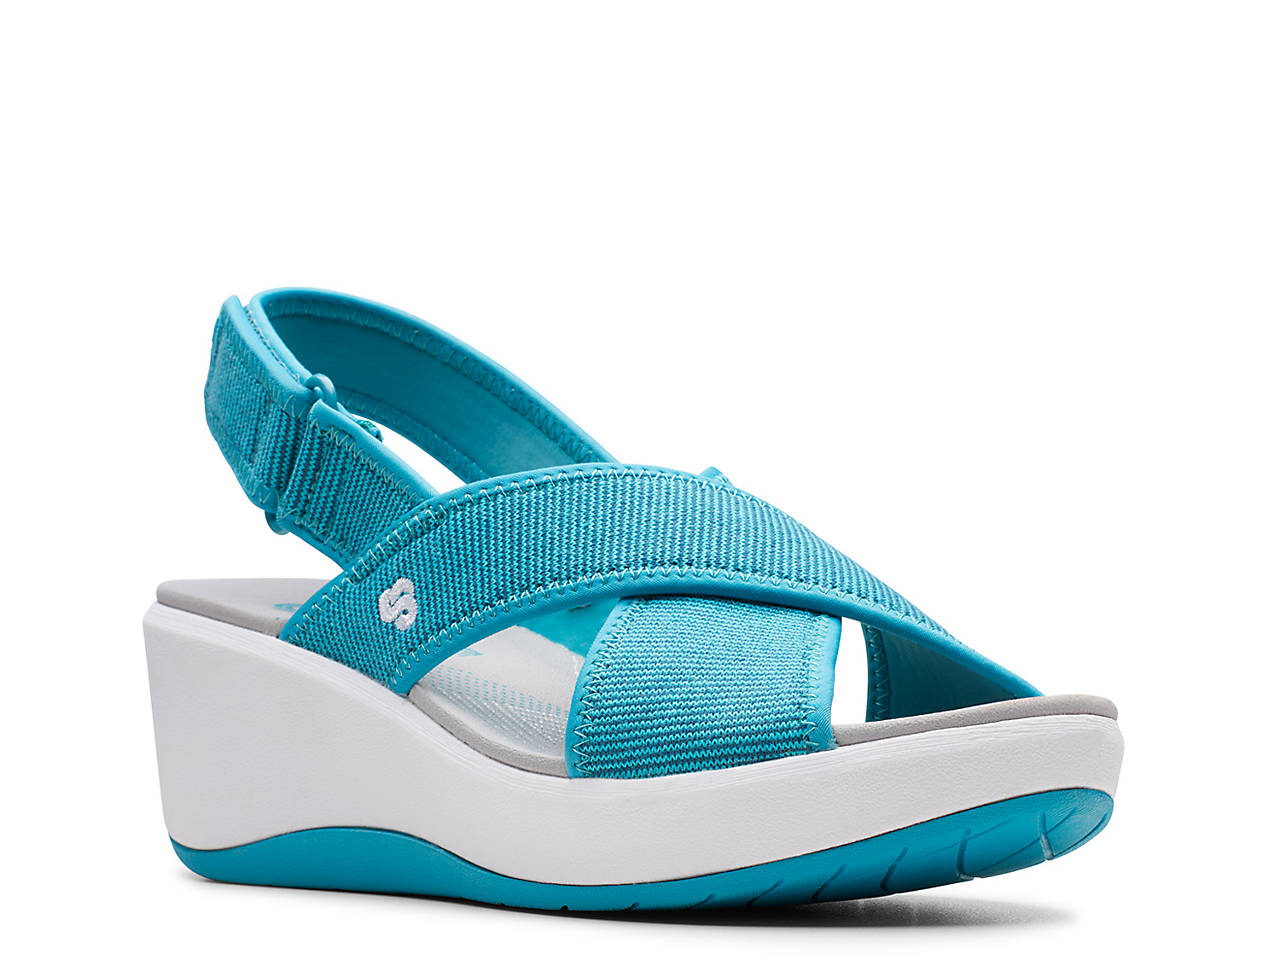 140595b08195 Cloudsteppers by Clarks Step Cali Cove Wedge Sandal Women s Shoes